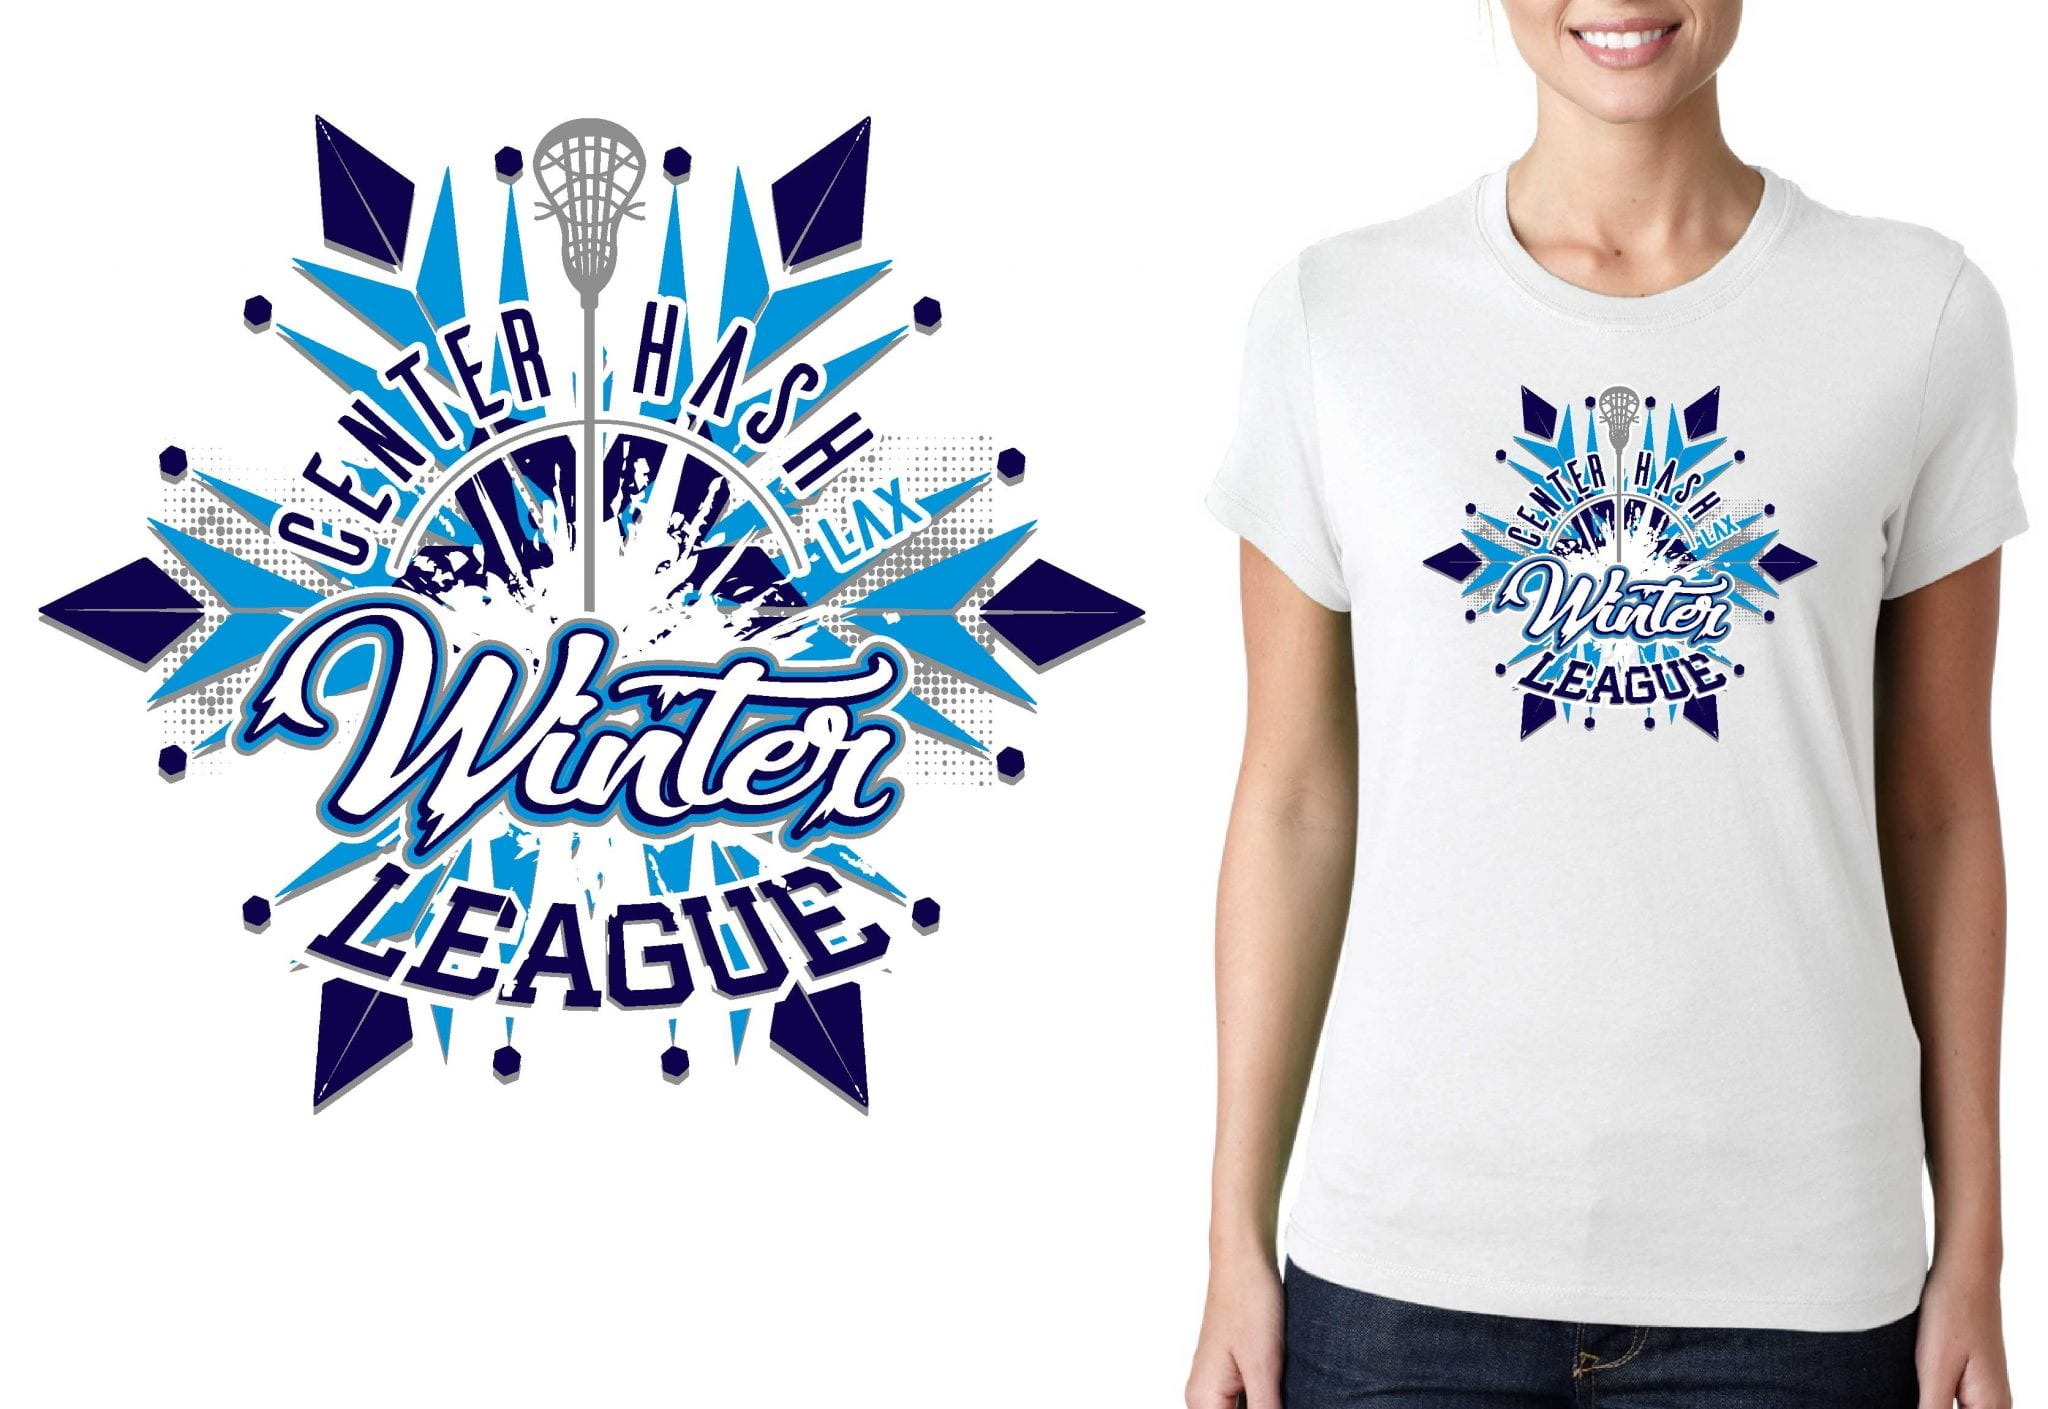 2017 Winter League Ashley Means LACROSSE vector logo design for t-shirt UrArtStudio